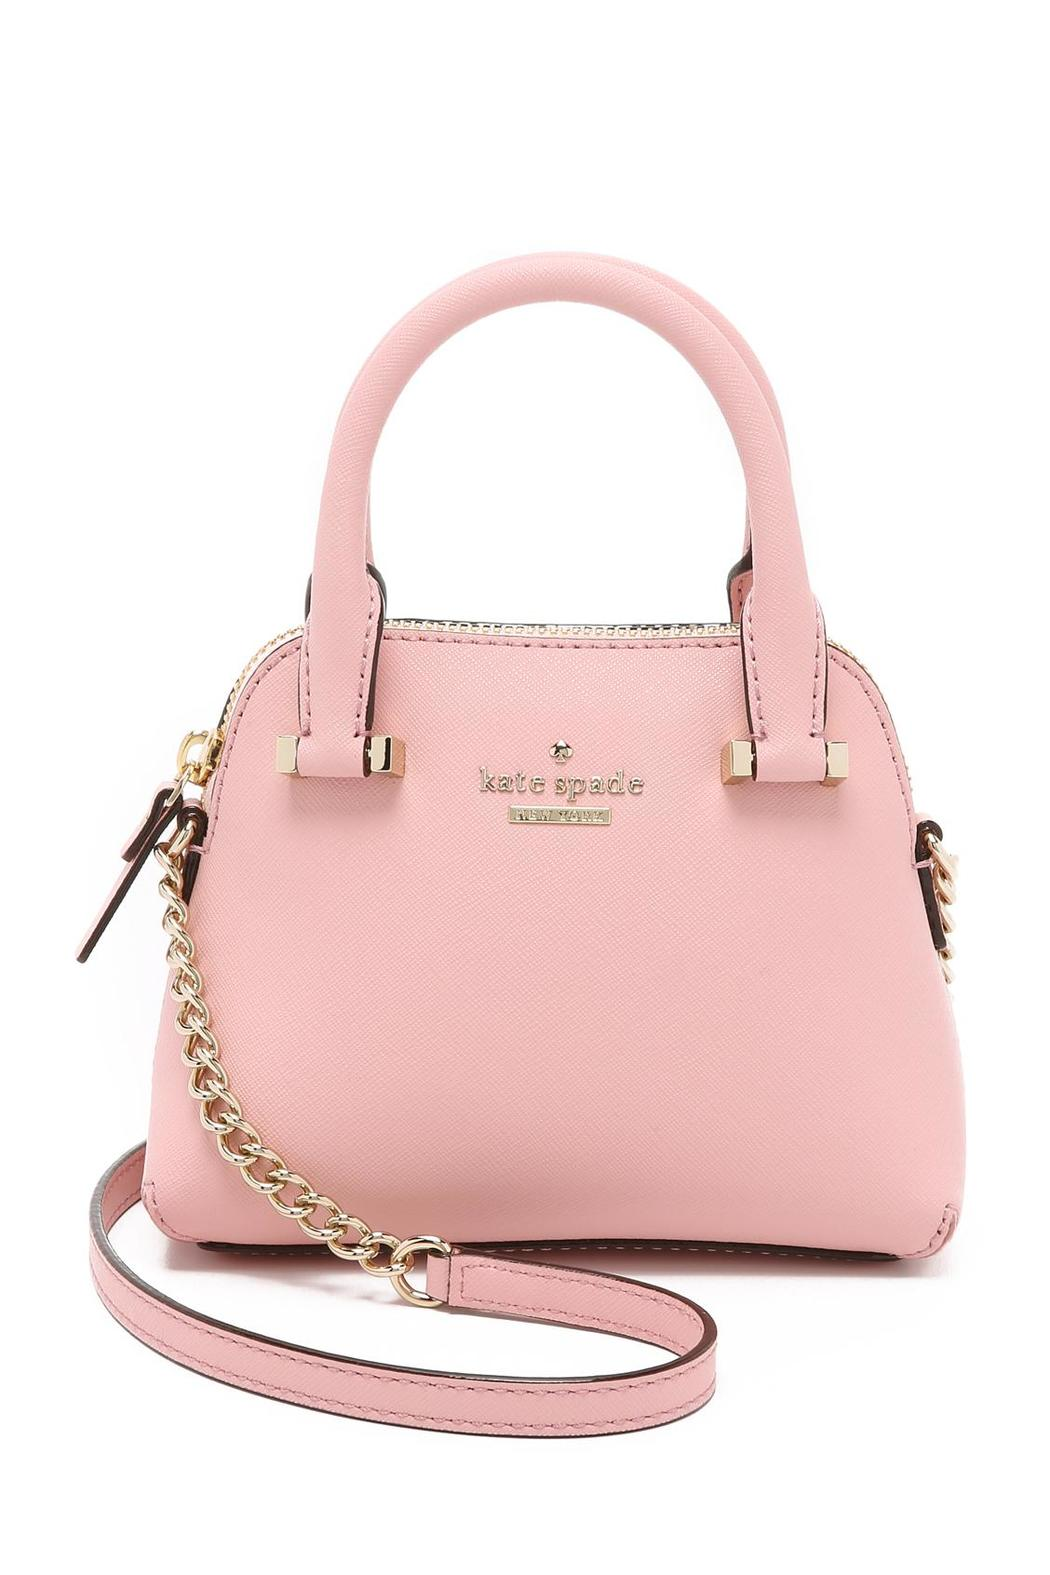 Kate Spade New York Mini Maise Bag - Front Cropped Image